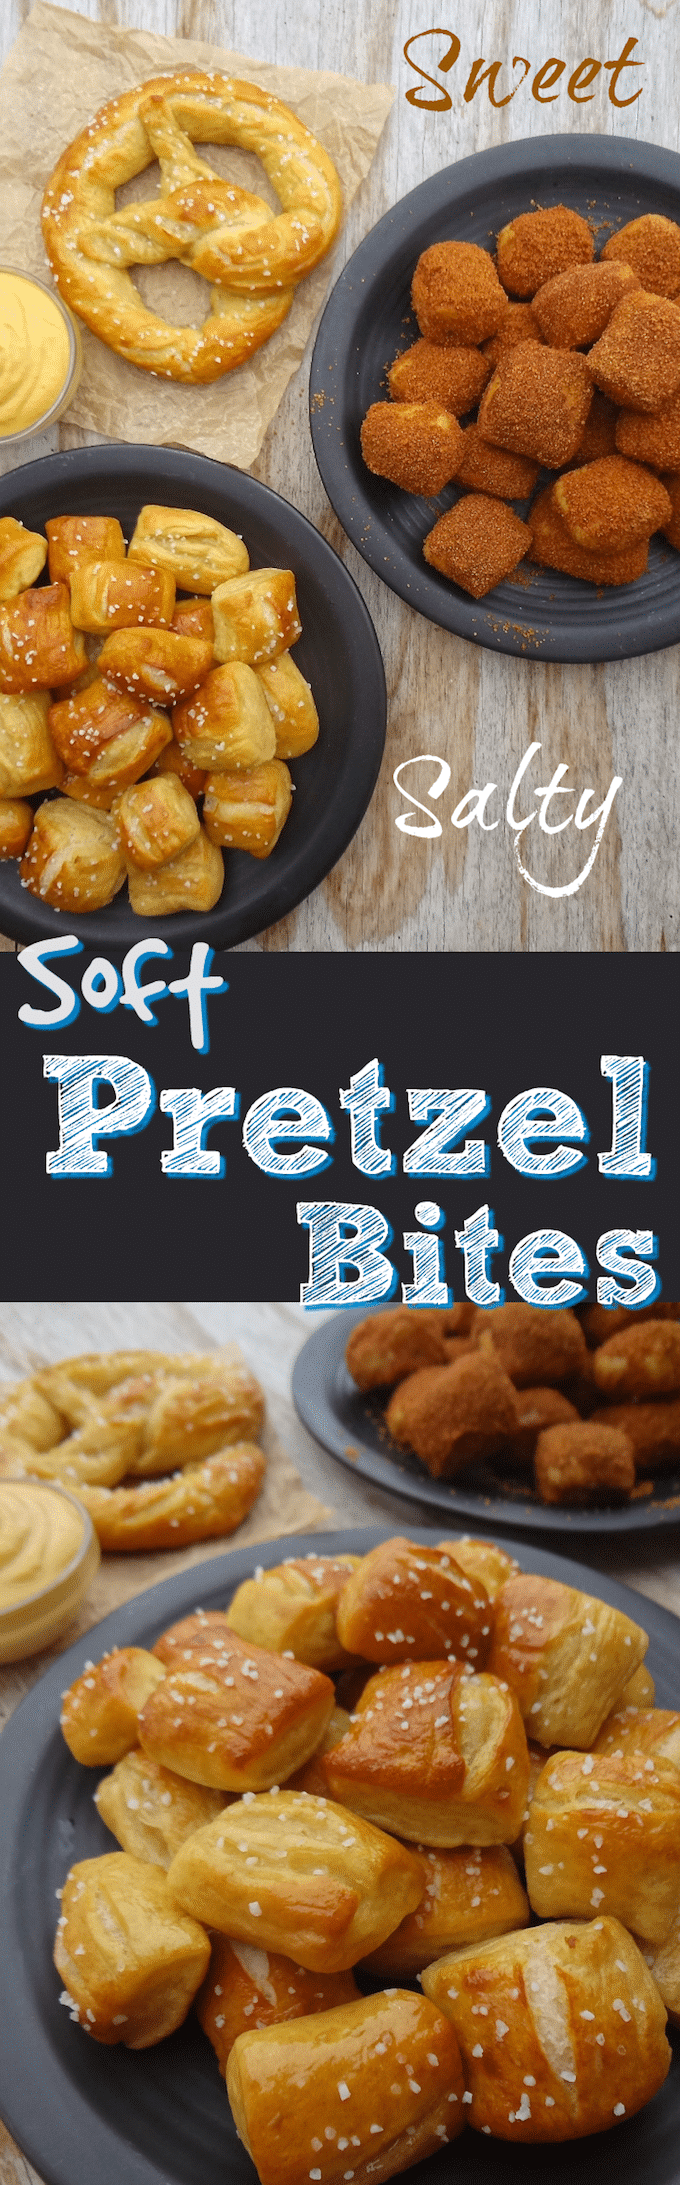 No need to choose a flavor with these, ready in about an hour, Sweet & Salty, Vegan Soft Pretzel Bites. They're also egg, dairy & refined sugar free! Simple and easy to make, kid-friendly, party food that will satisfy you and your guests sweet & salty craving!